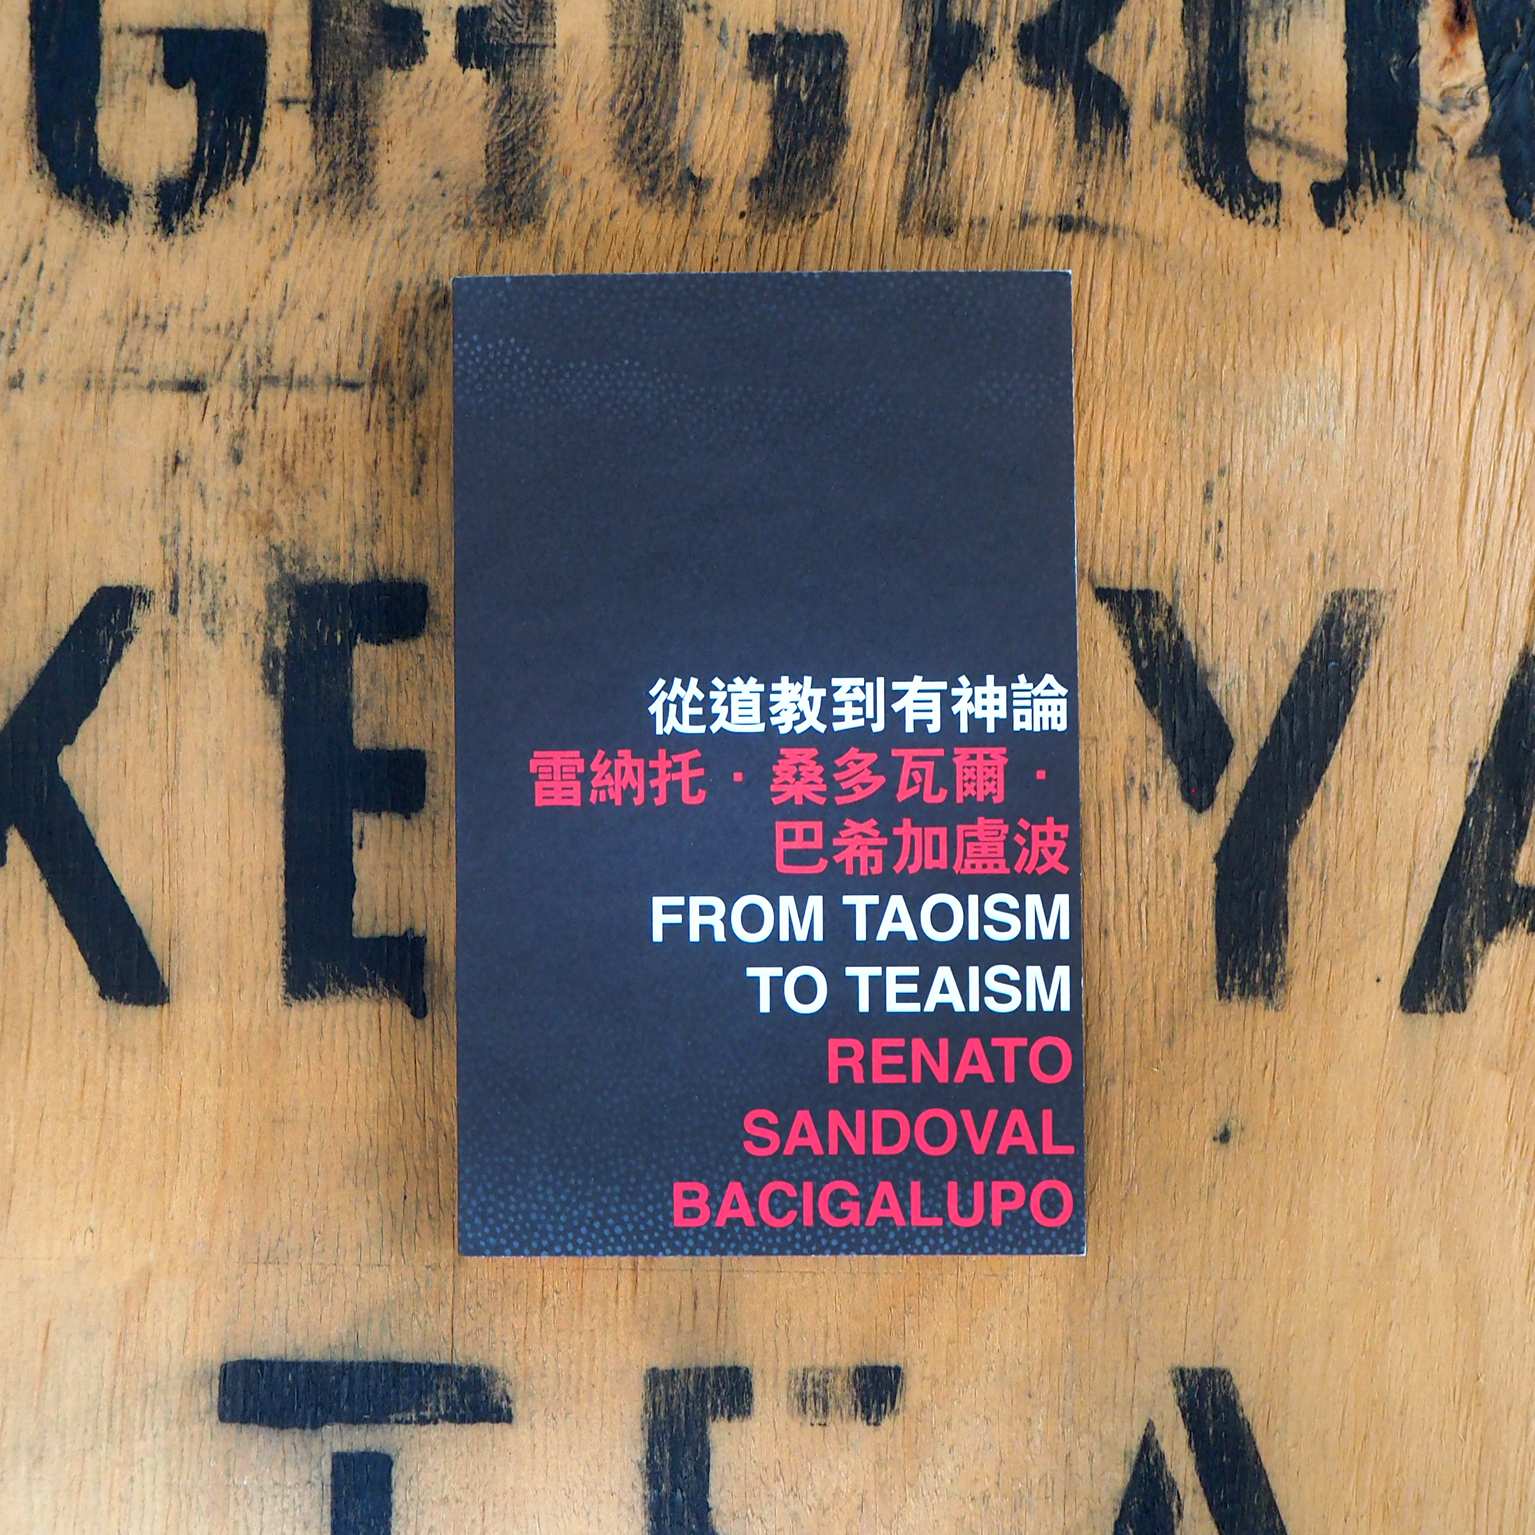 From Taoism to Teaism by Renato Sandoval Bacigalupo